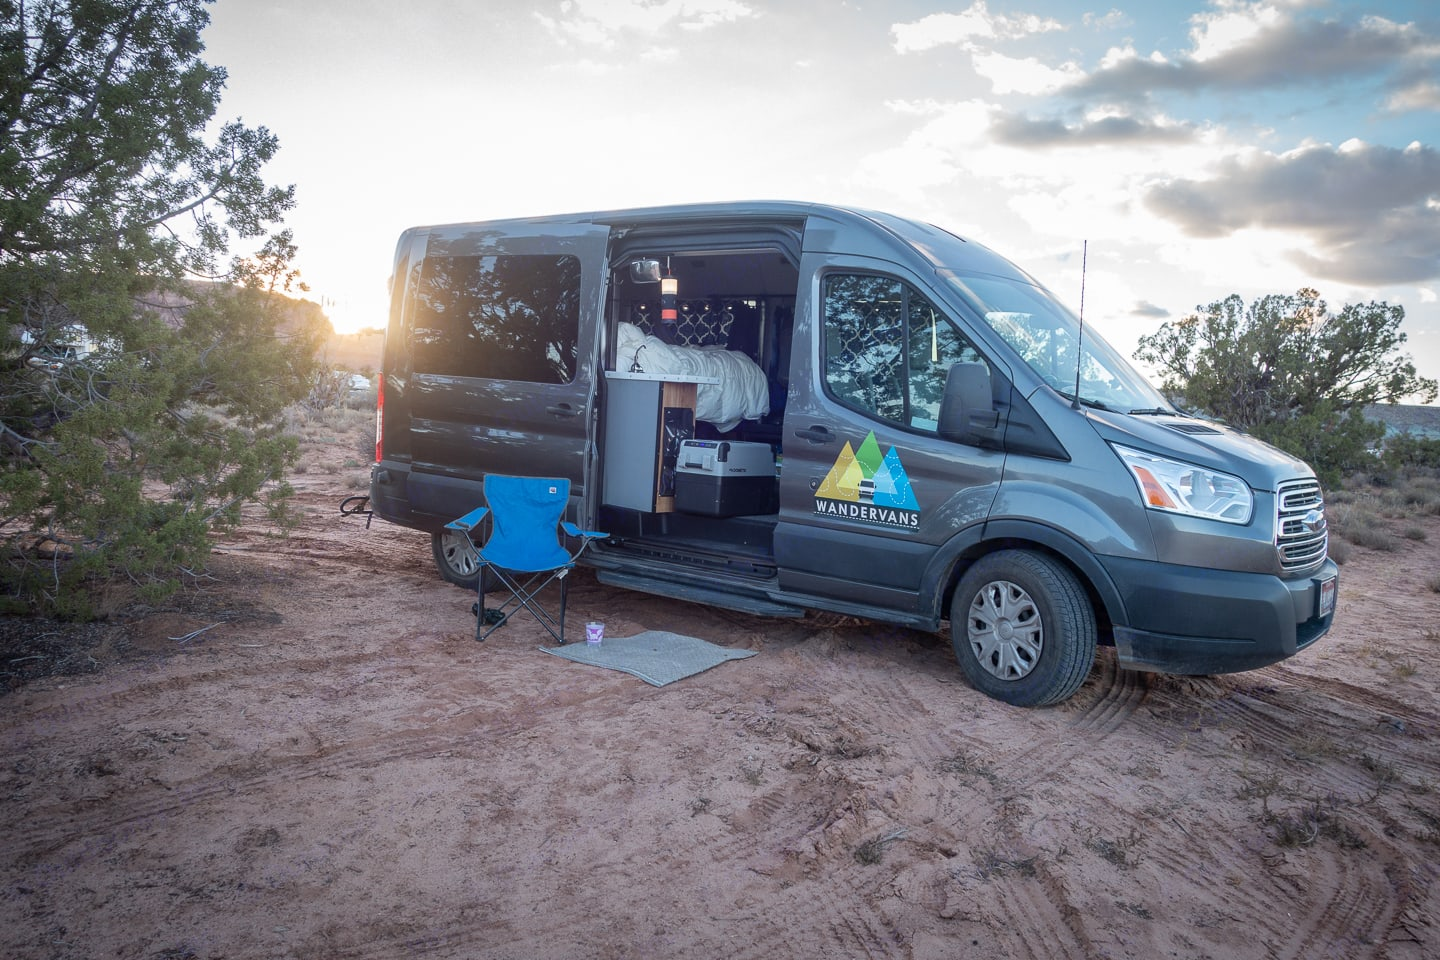 Camping is easy, roll up and toss out the chairs and your good to go! After a long day of exploring the last thing you want is a complicated set up of tents, awnings or pop ups. . Ford Transit 2019